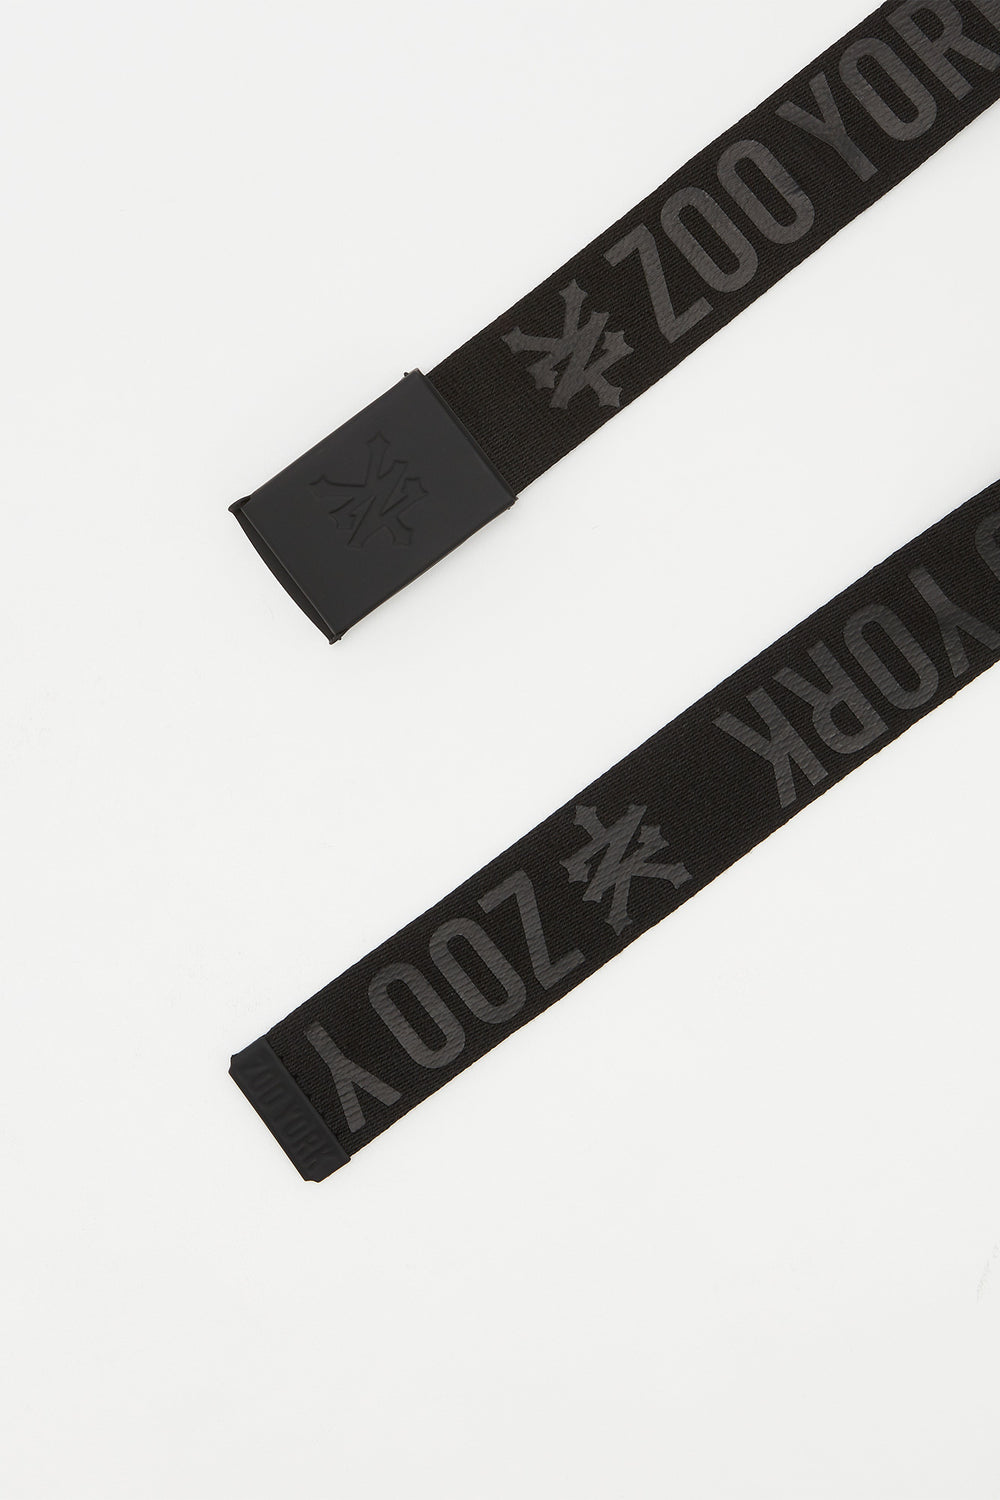 Zoo York Mens Black Cotton Belt Black